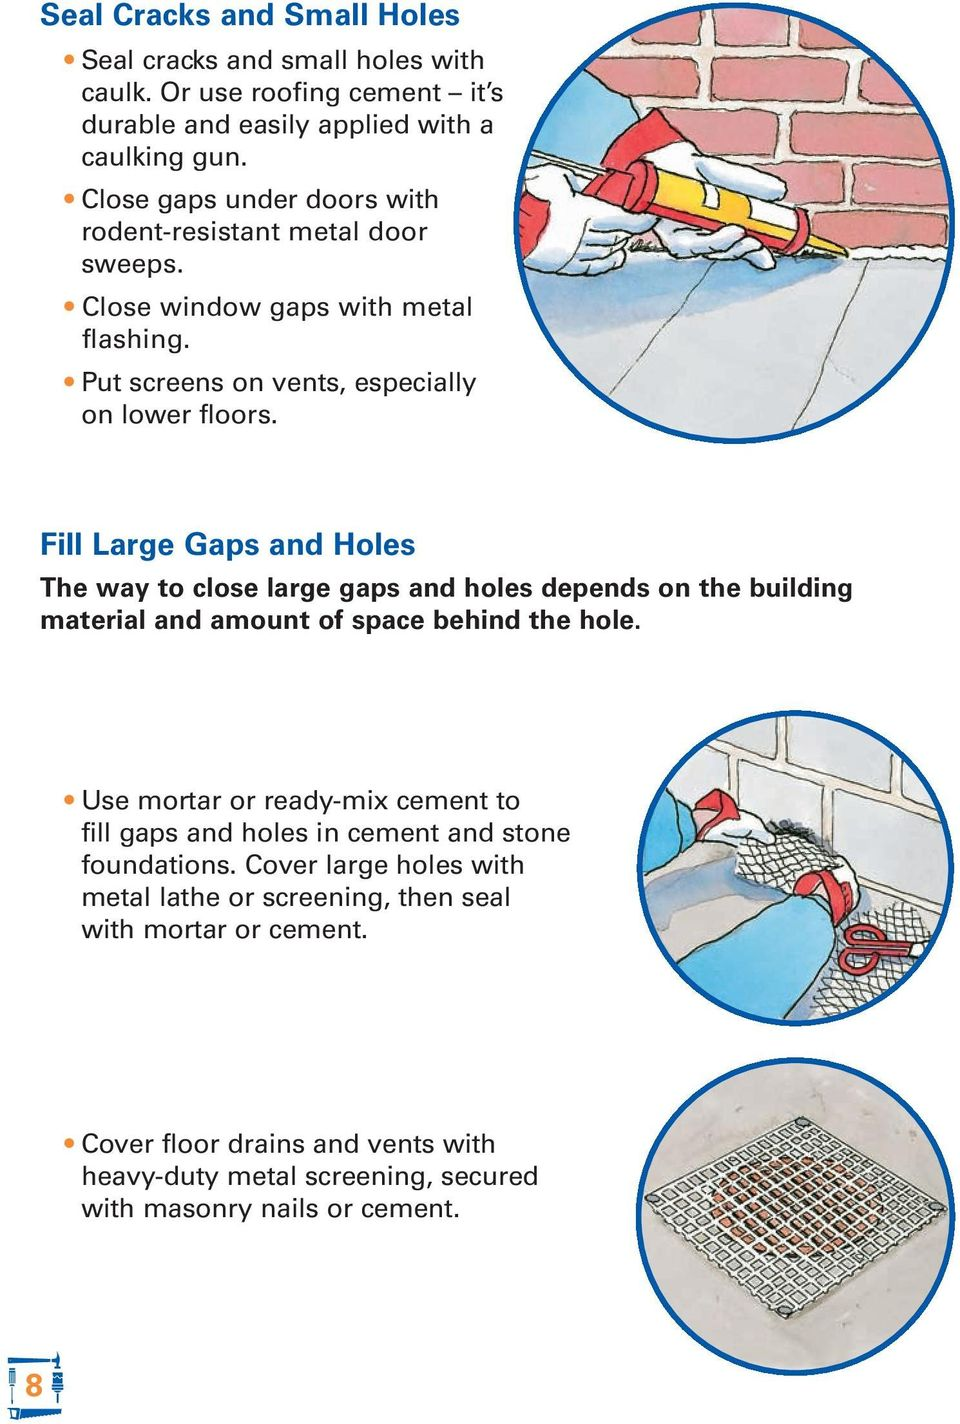 Fill Large Gaps and Holes The way to close large gaps and holes depends on the building material and amount of space behind the hole.